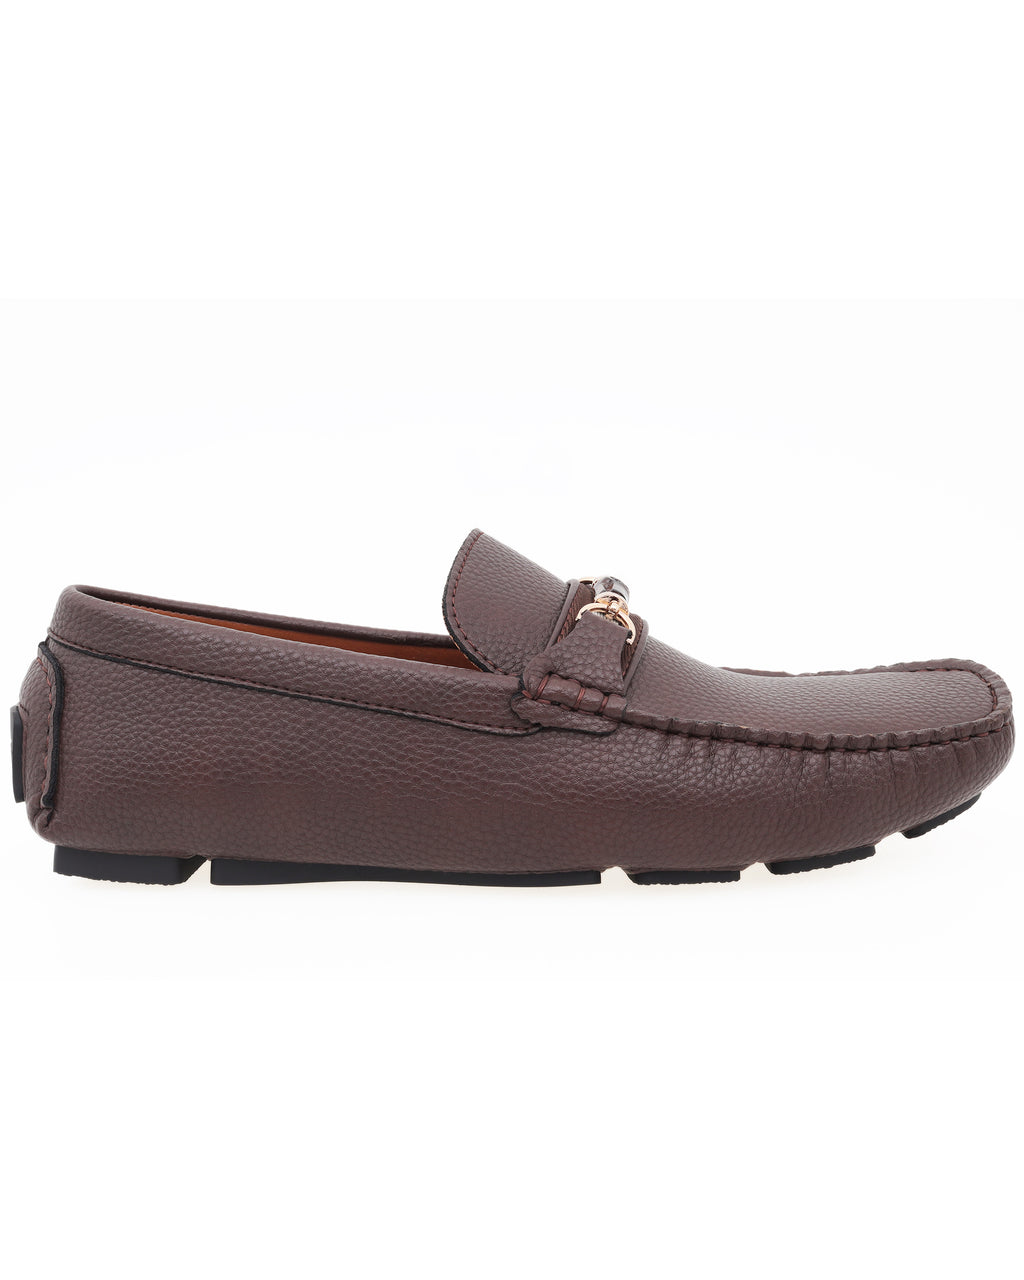 Tomaz C444 Horsebit Buckle Moccasins (Coffee)